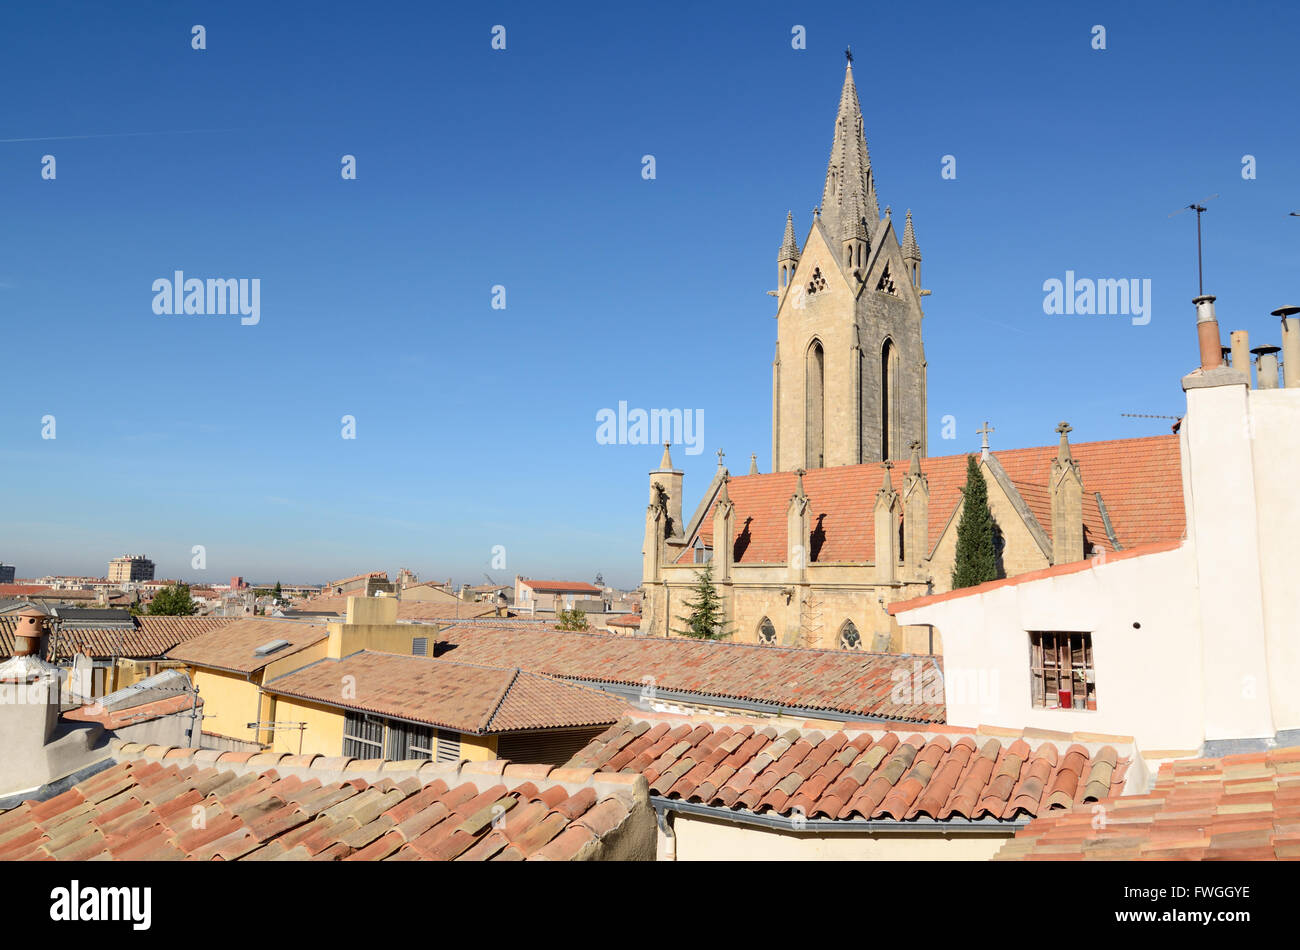 View and Spire of the c13th Gothic Church or Eglise Saint-Jean-de-Malte & Rooftops of Aix-en-Provence Provence - Stock Image